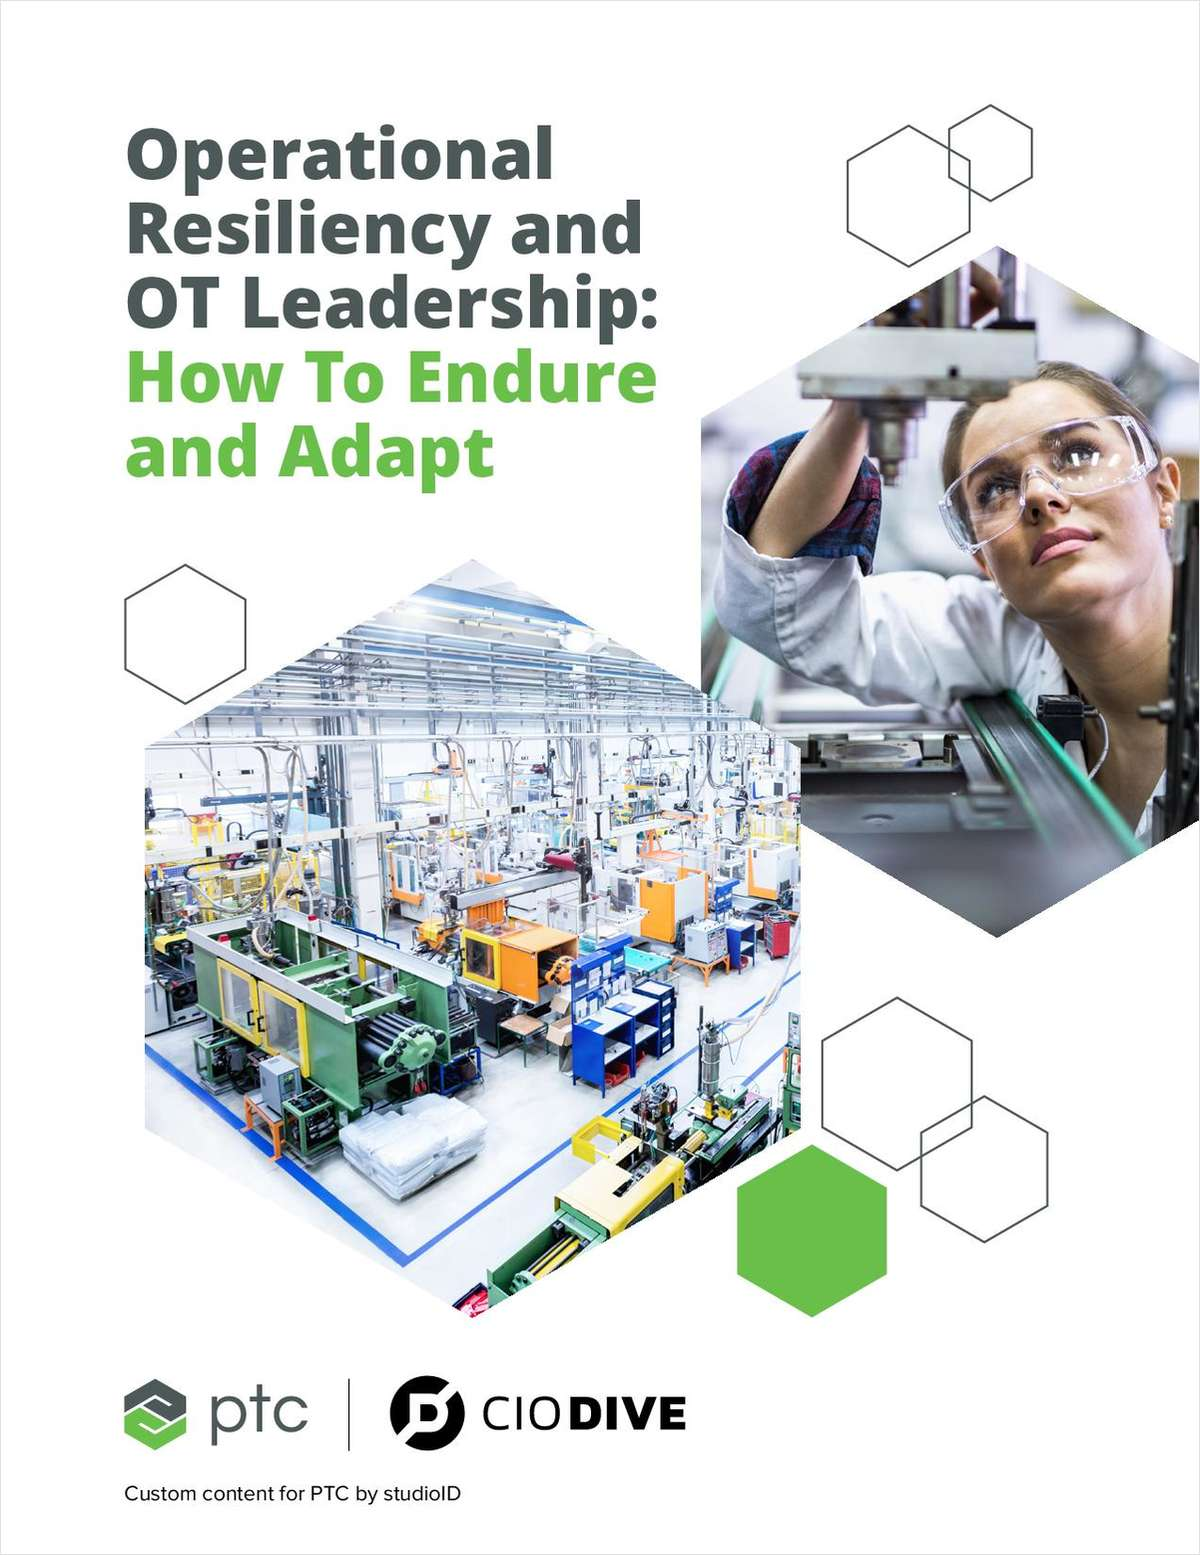 5 Challenges to Operational Resiliency and How to Conquer Them